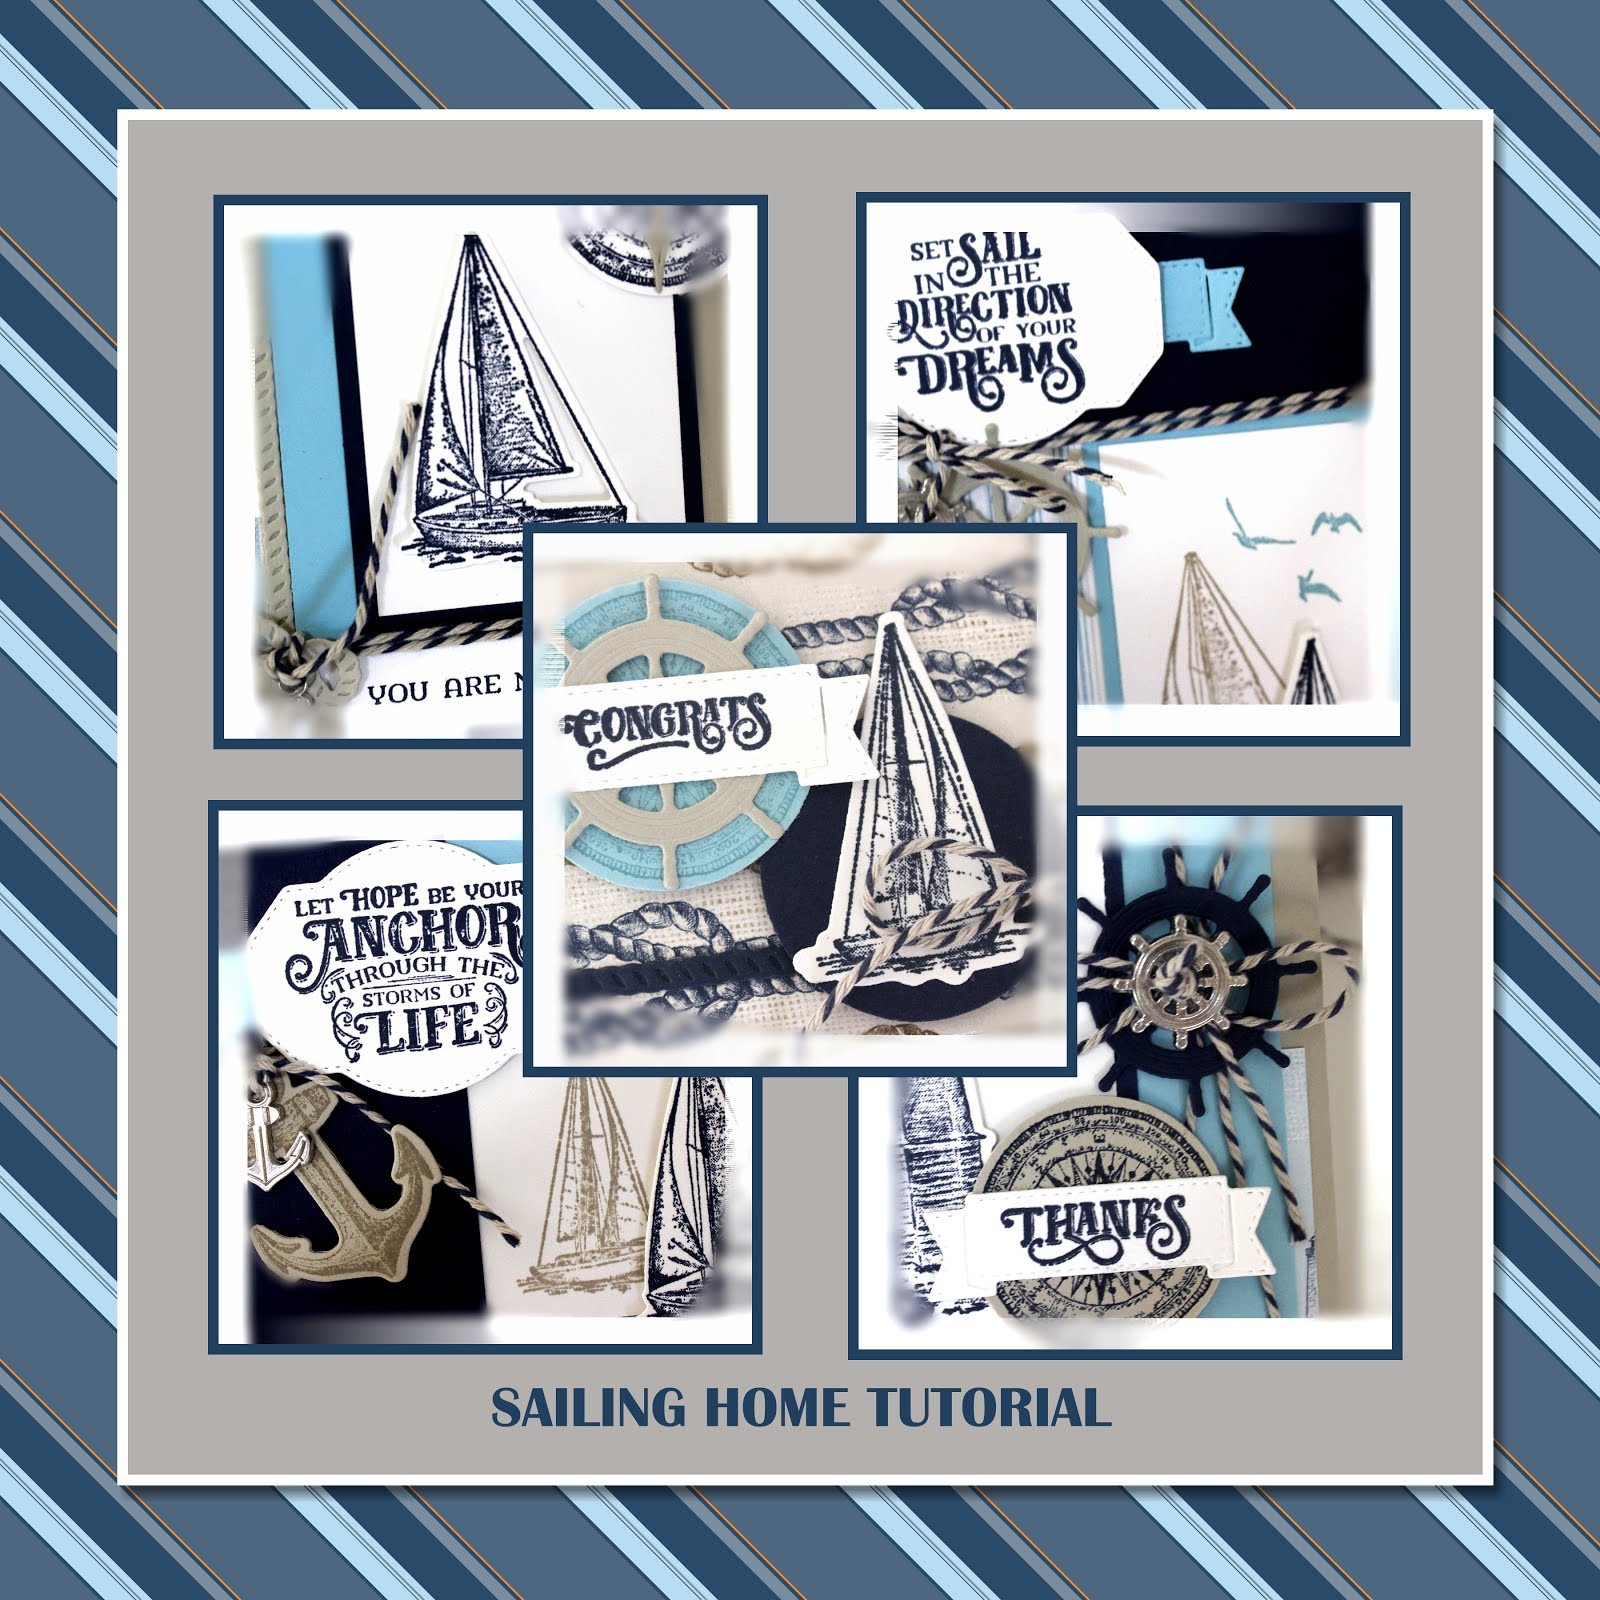 June 2019 Sailing Home Tutorial